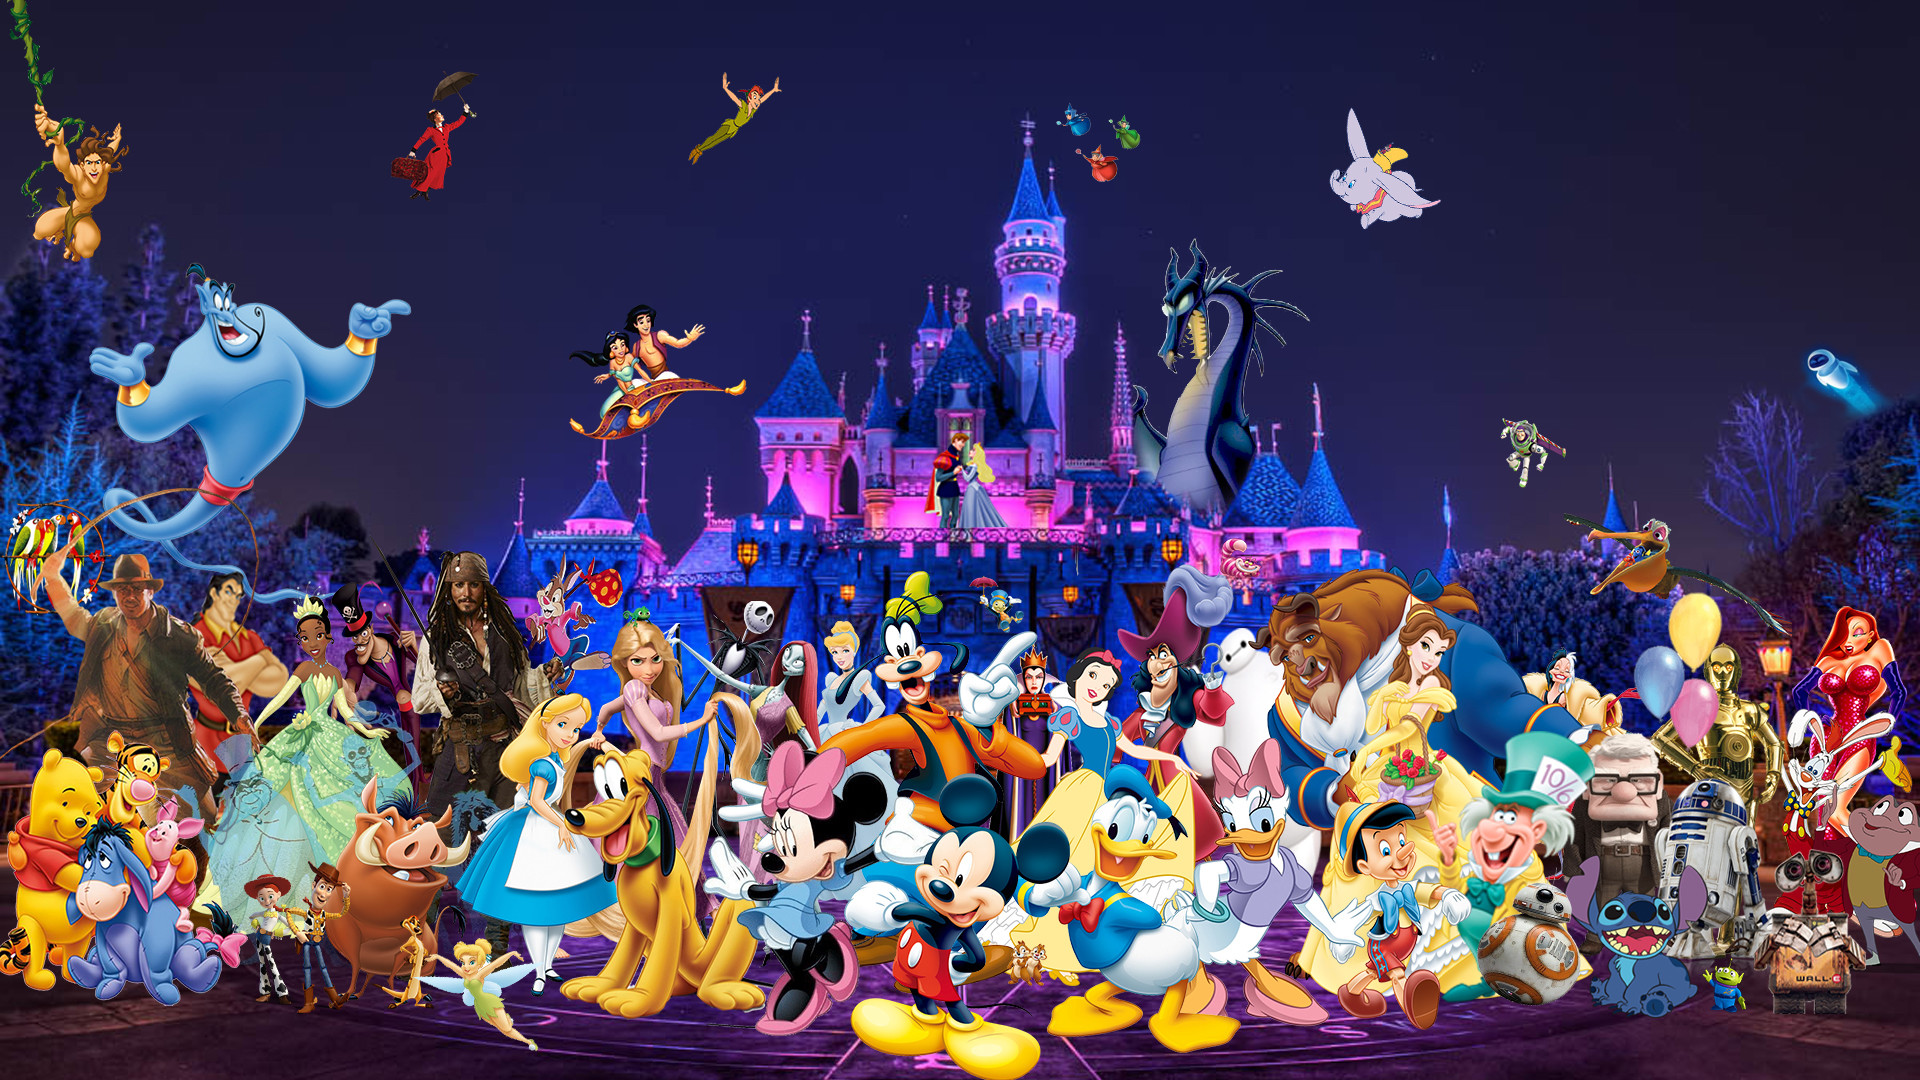 1920x1080 ... Disneyland Wallpaper by The-Dark-Mamba-995